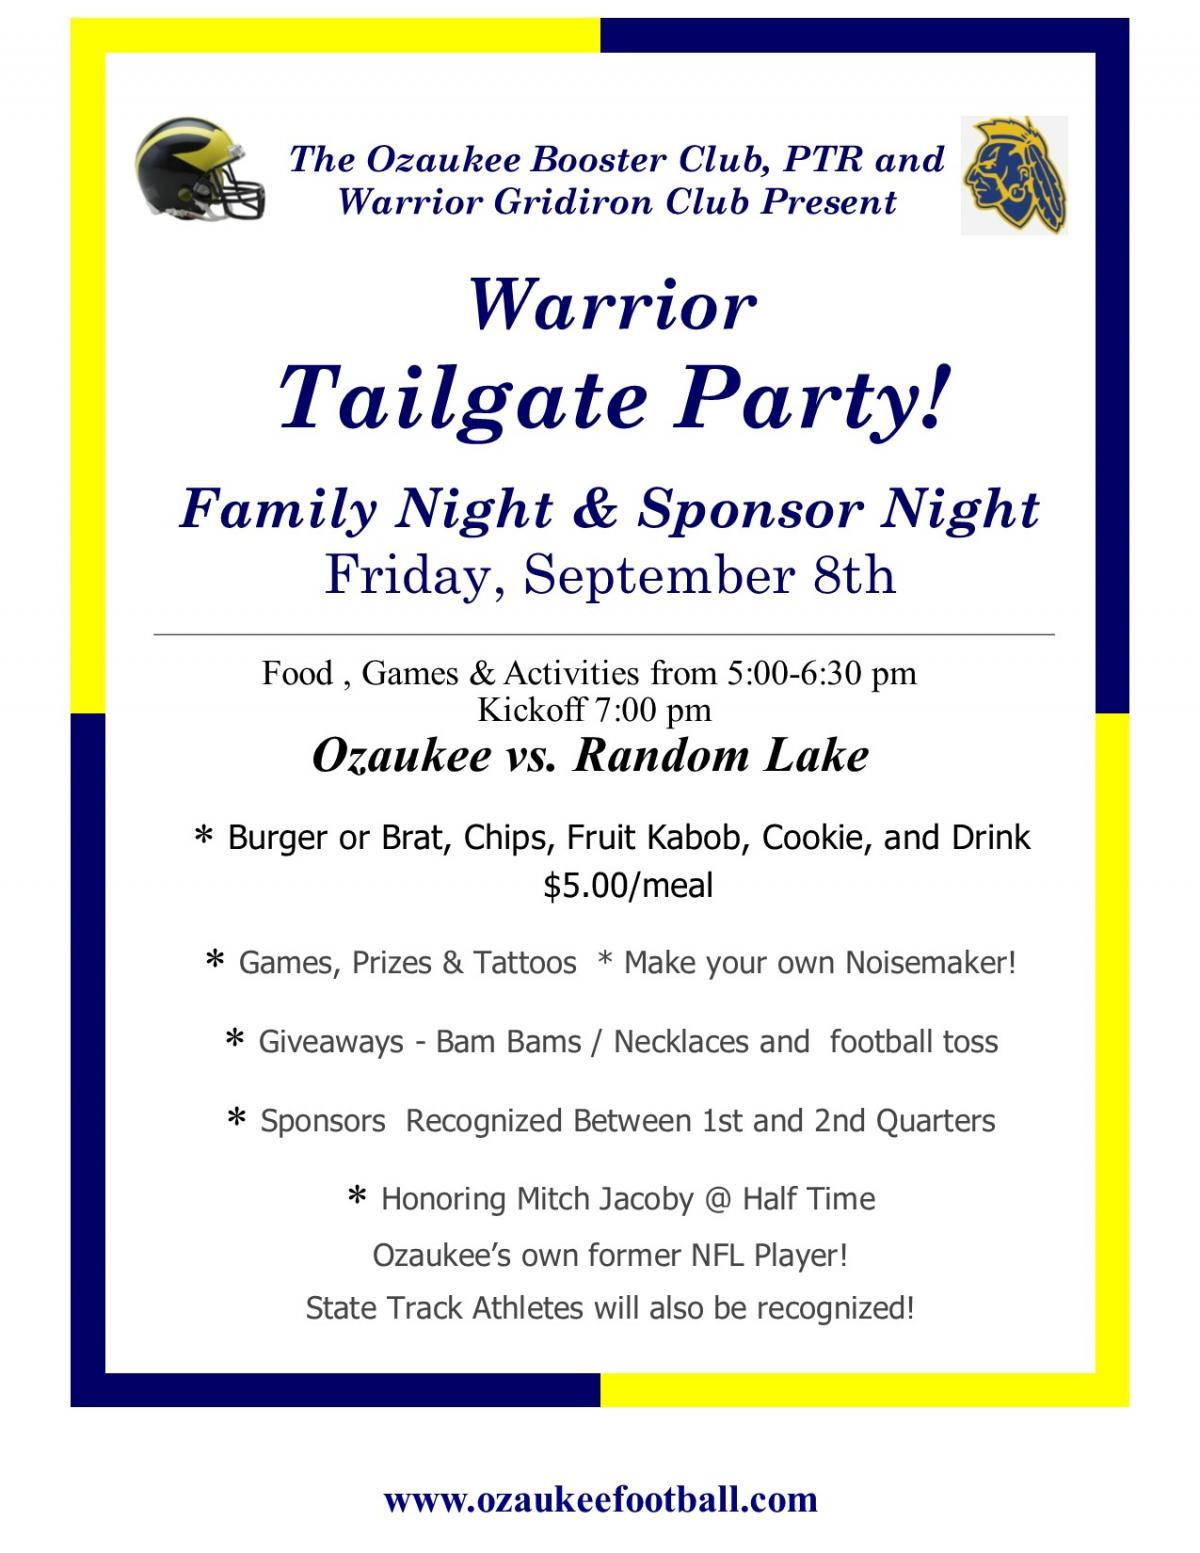 Annual Tailgate Party this Friday!